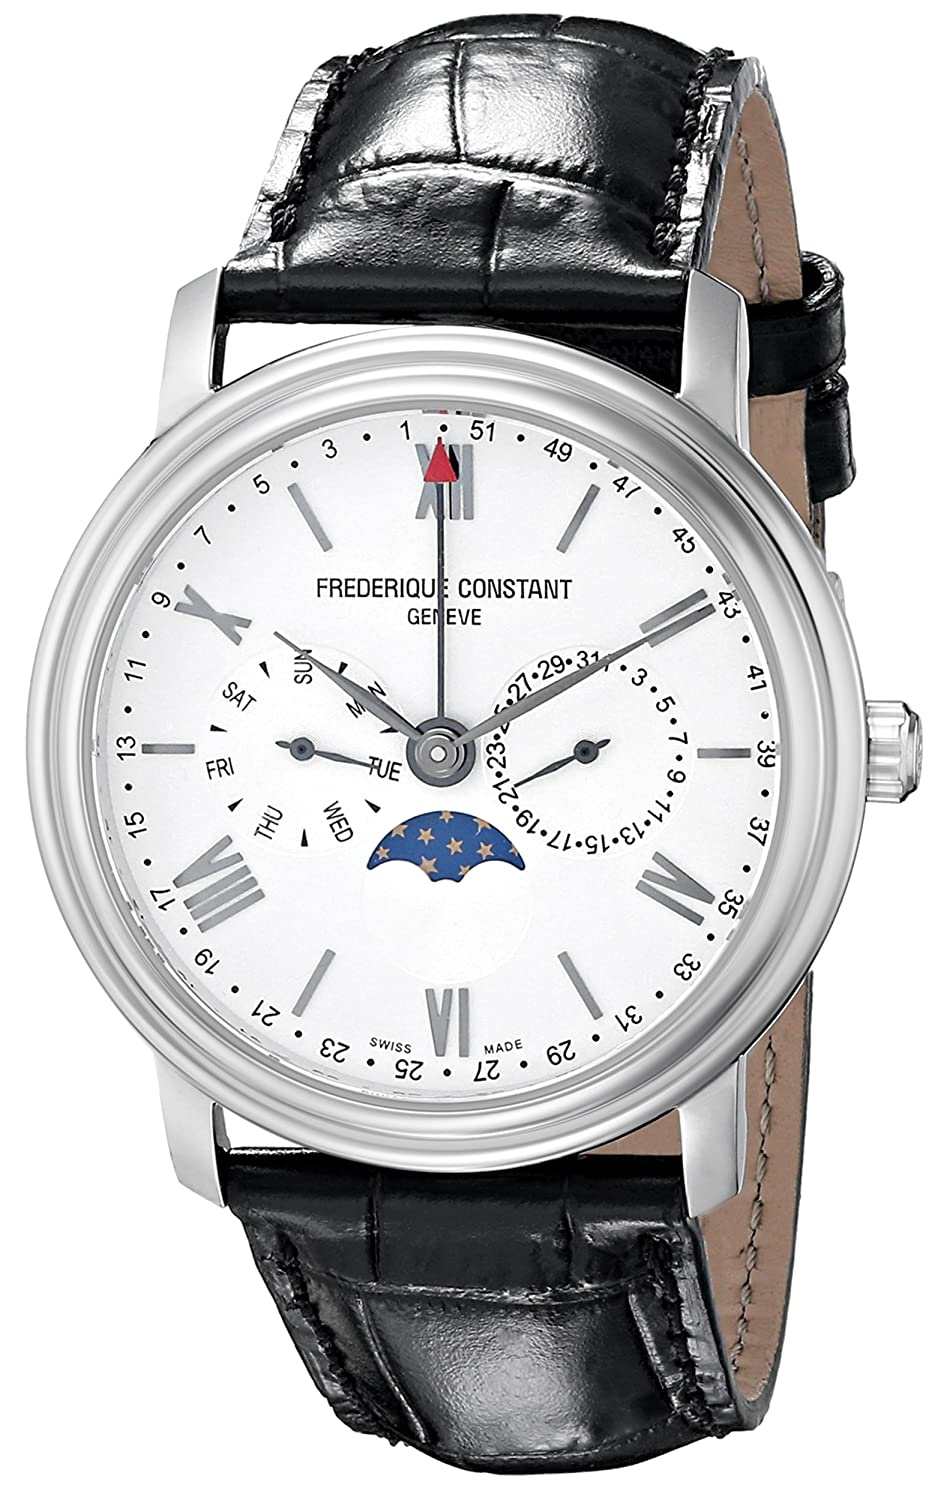 Frederique Constant Geneve Classic Business Timer FC-270SW4P6 Herrenarmbanduhr Sehr gut ablesbar